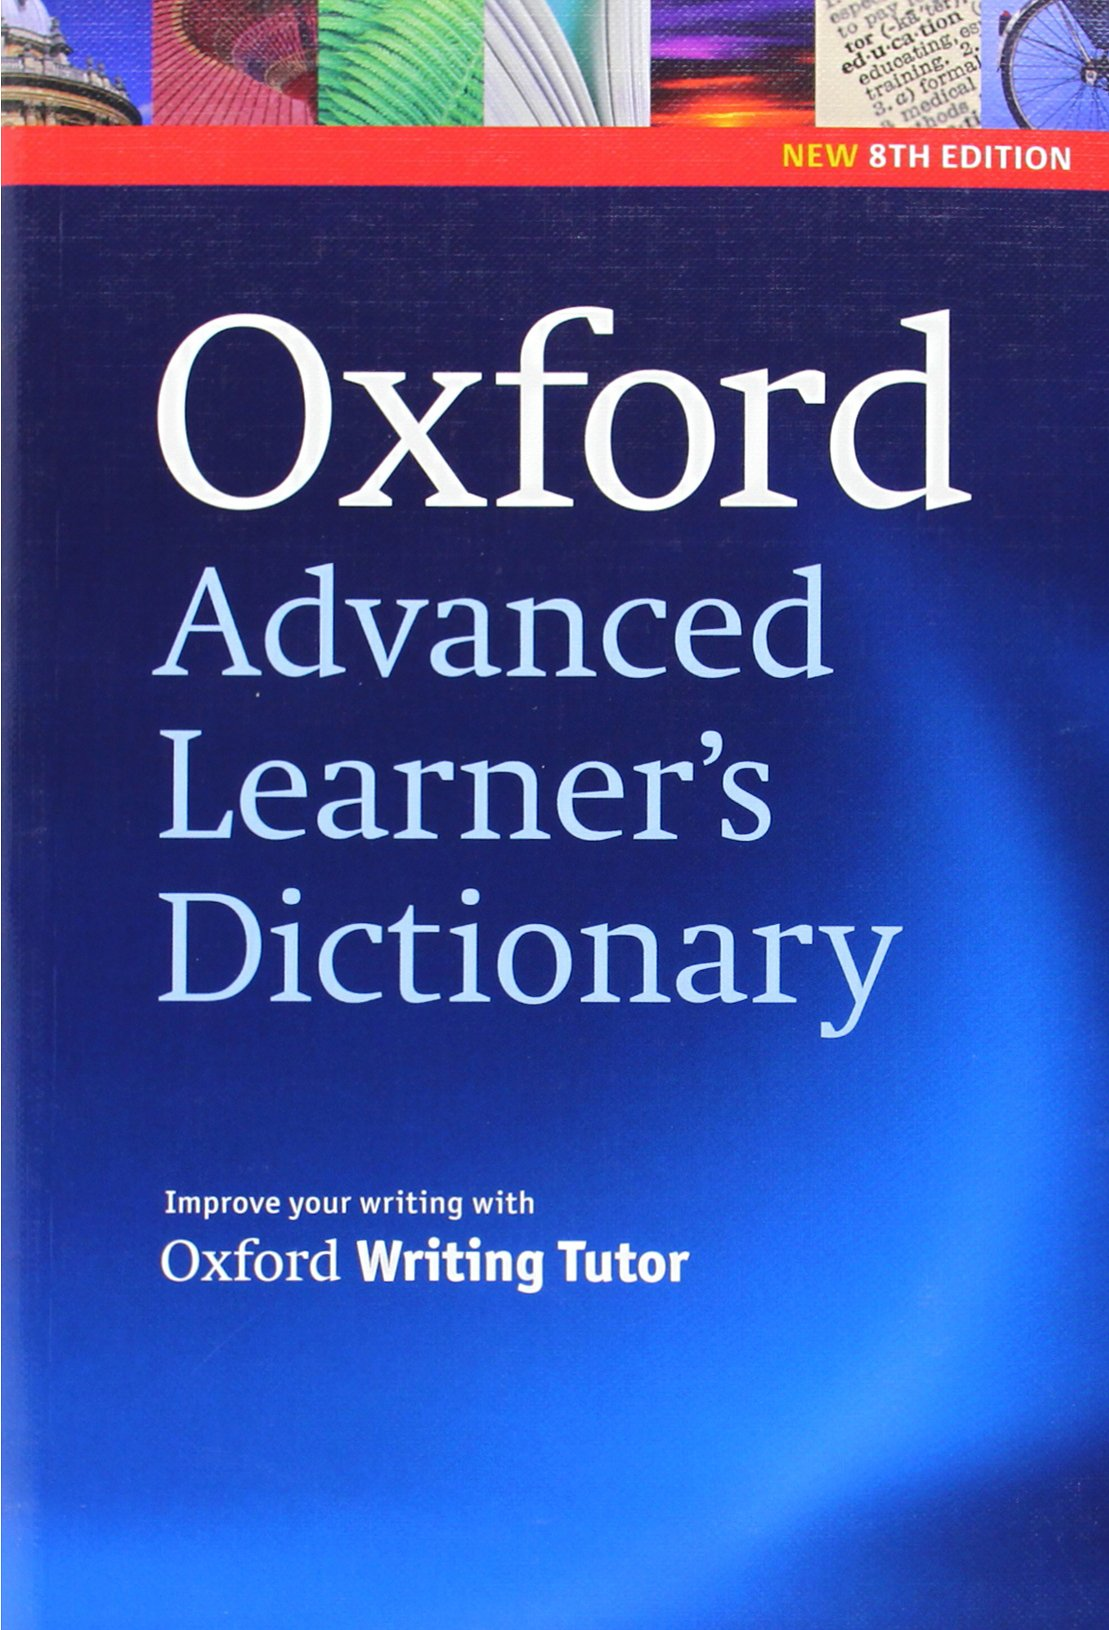 advanced oxford english dictionary free download